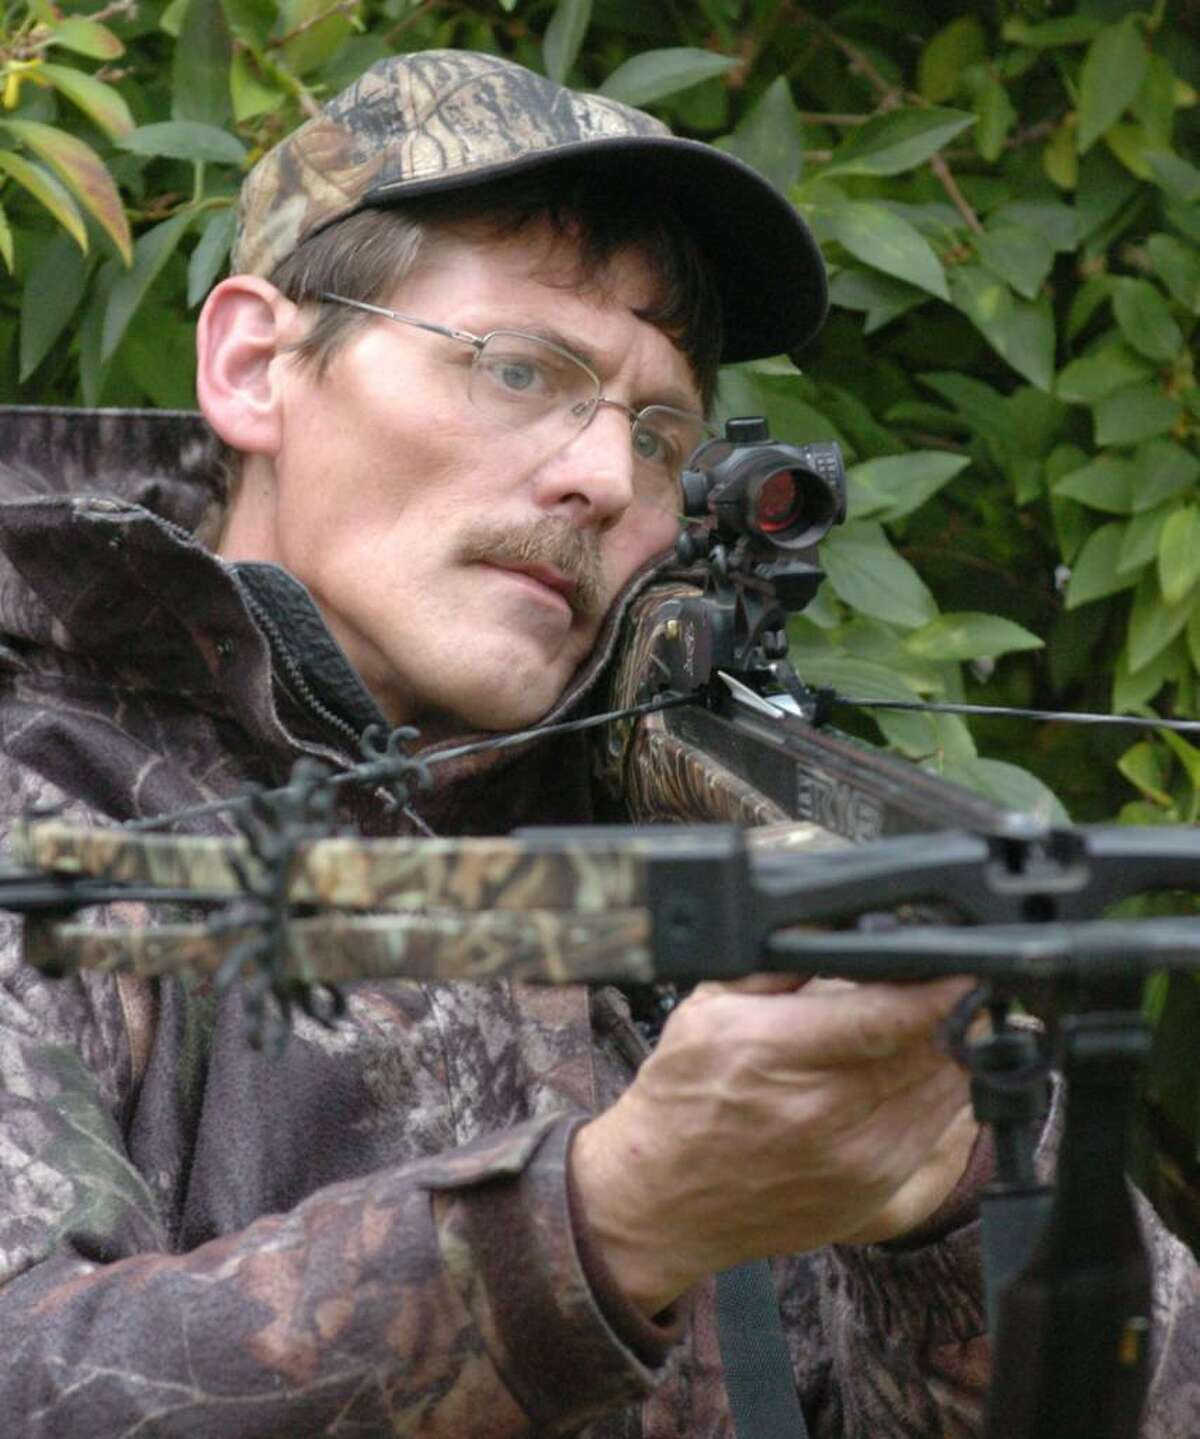 Alfred Bouchard, of Brookfield, demonstrates cross bow hunting techniques at their home Thursday, Nov. 5, 2009.